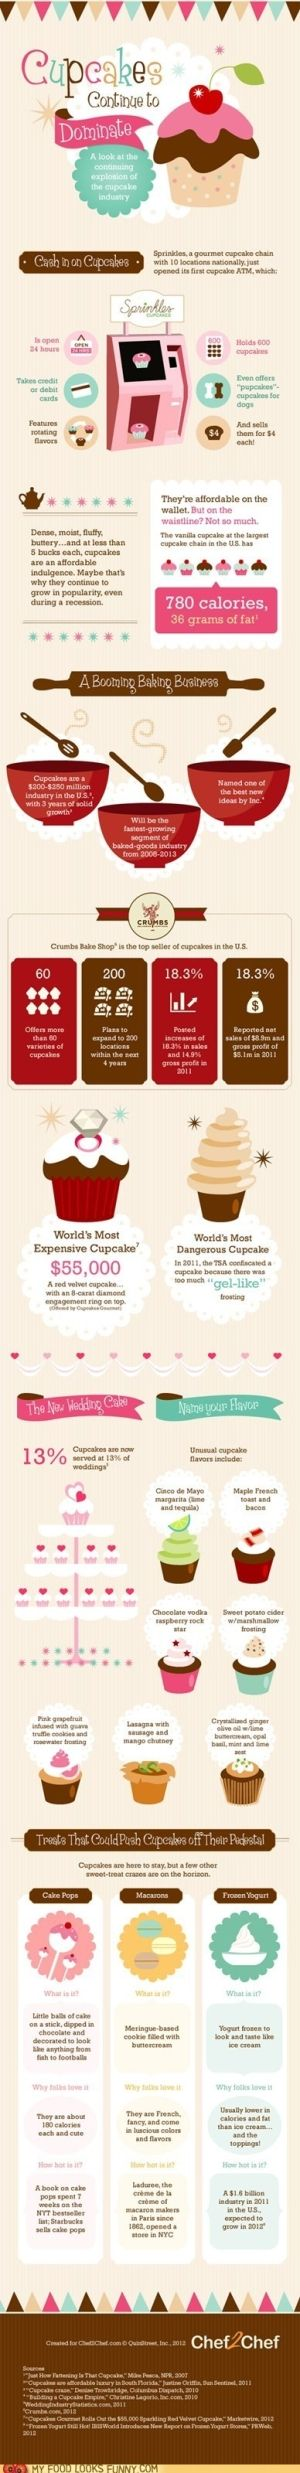 cupcake infographic by marcella